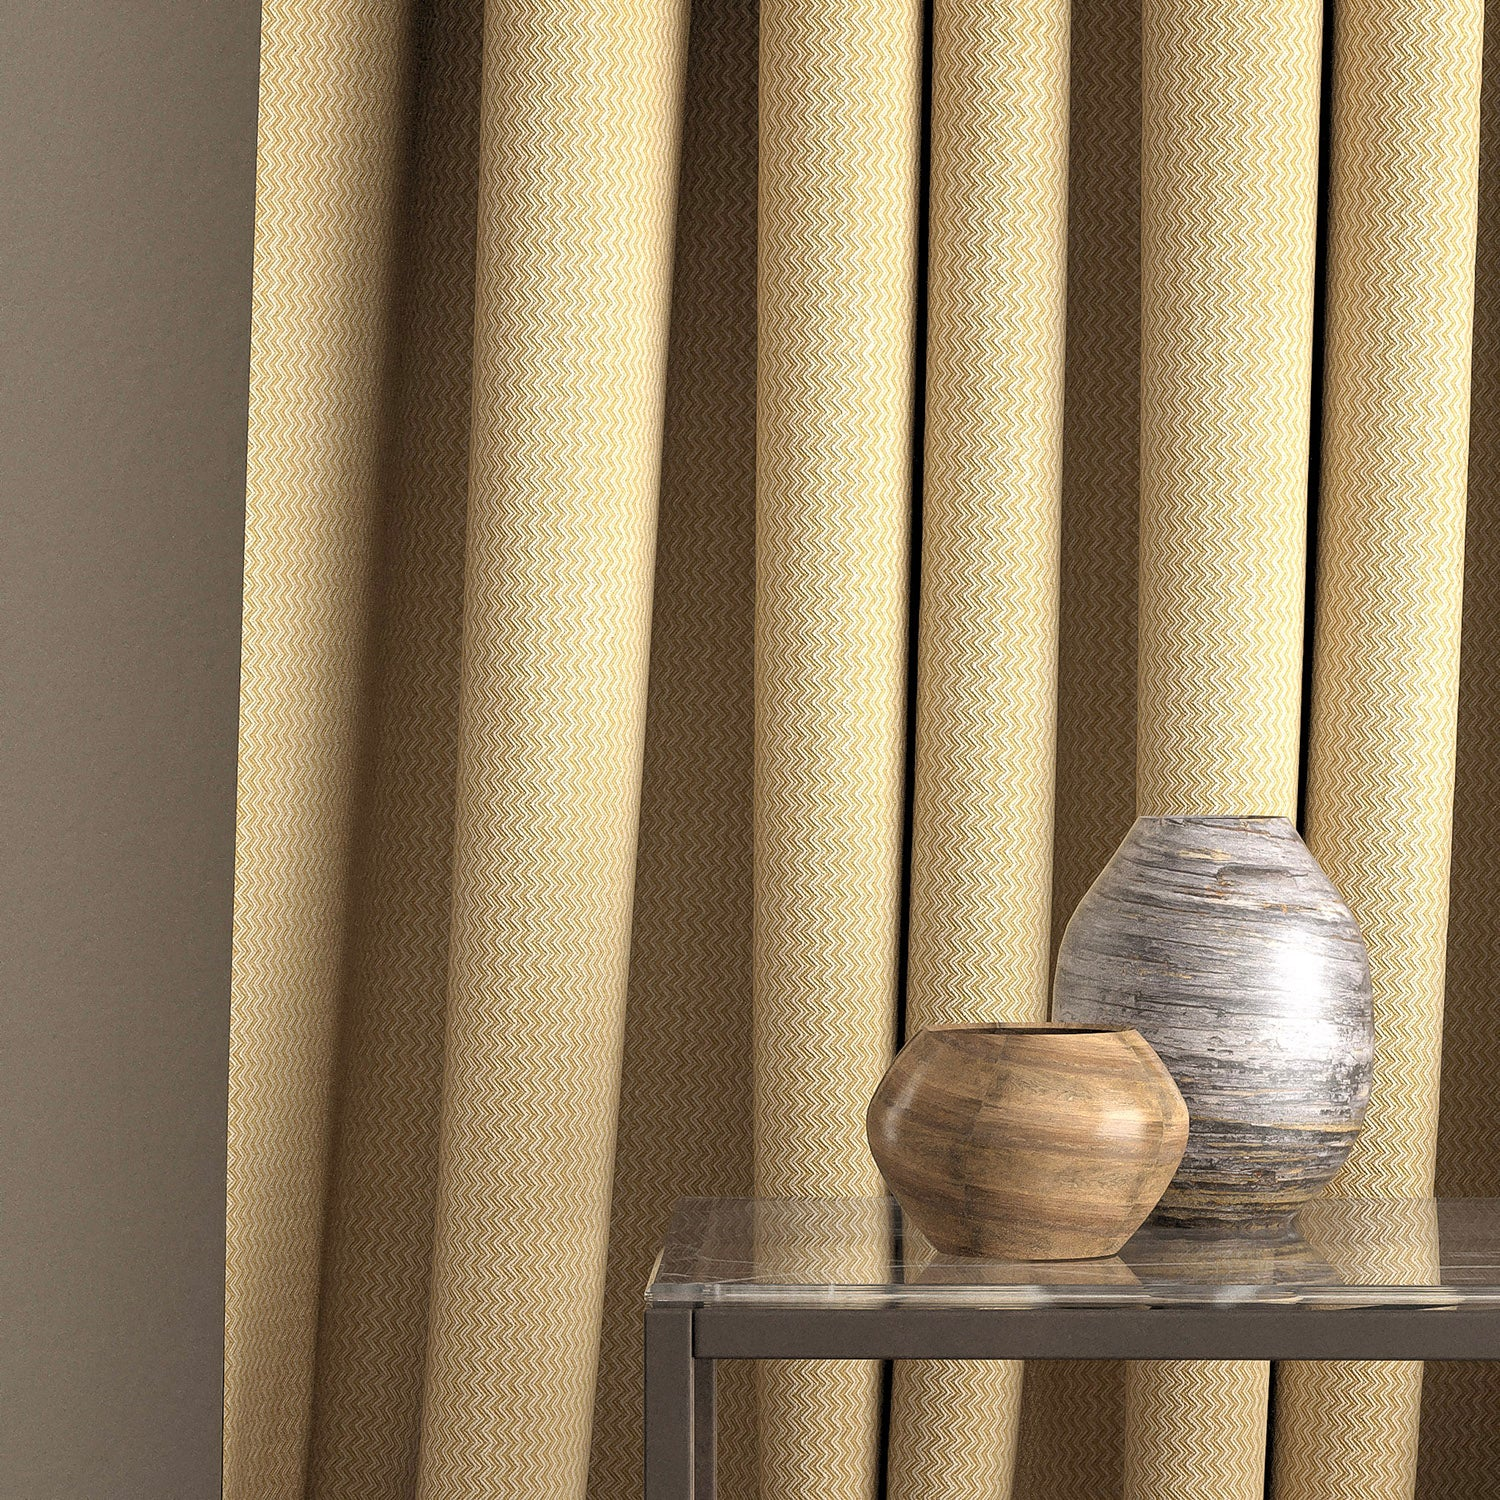 Curtain in a yellow and neutral zig zag weave fabric with a stain resistant finish